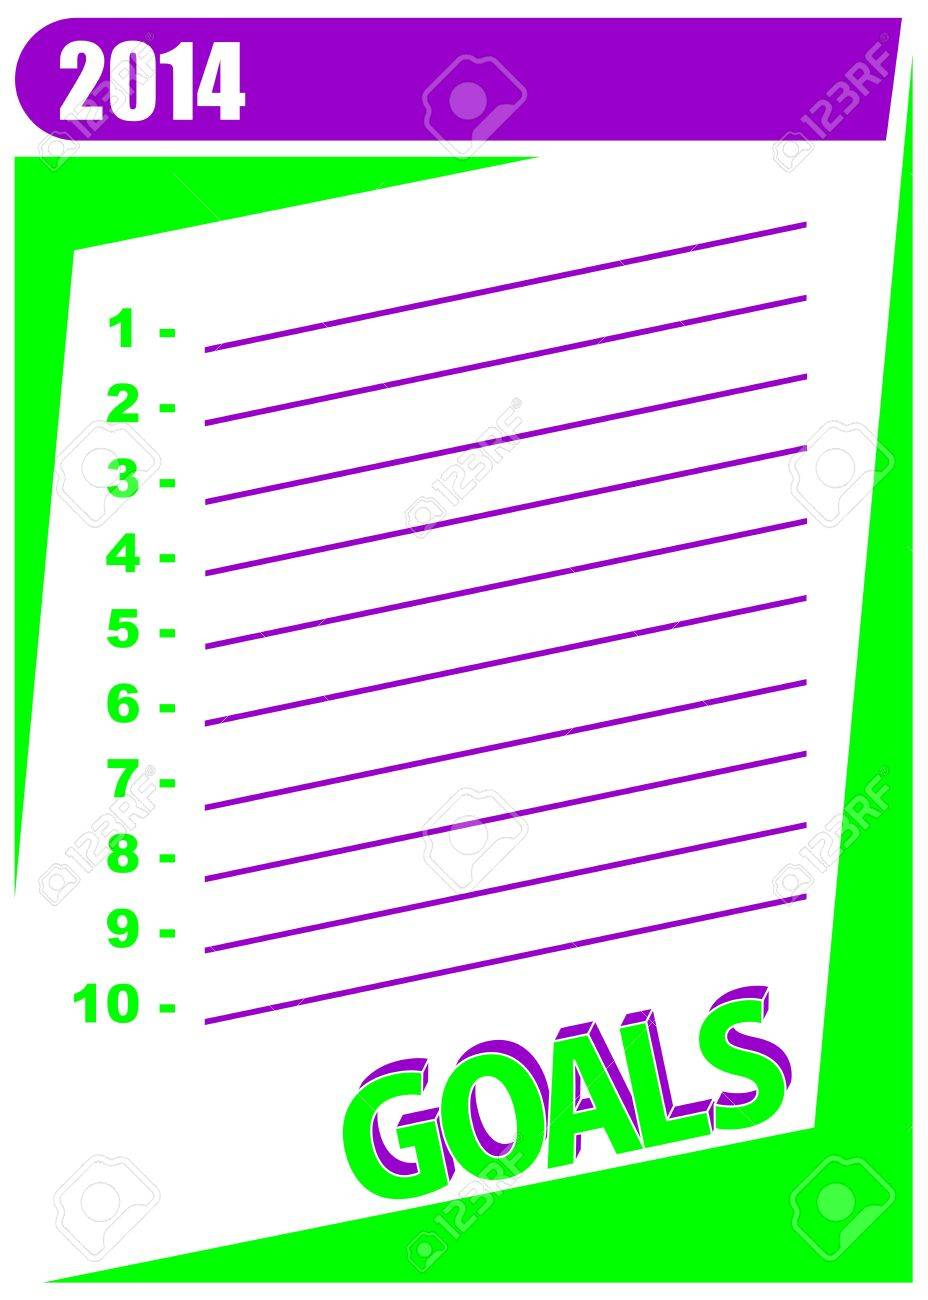 List of 10 personal goals to accomplish in the year. 2014 goals - New Year resolution concept. Stock Vector - 19217727